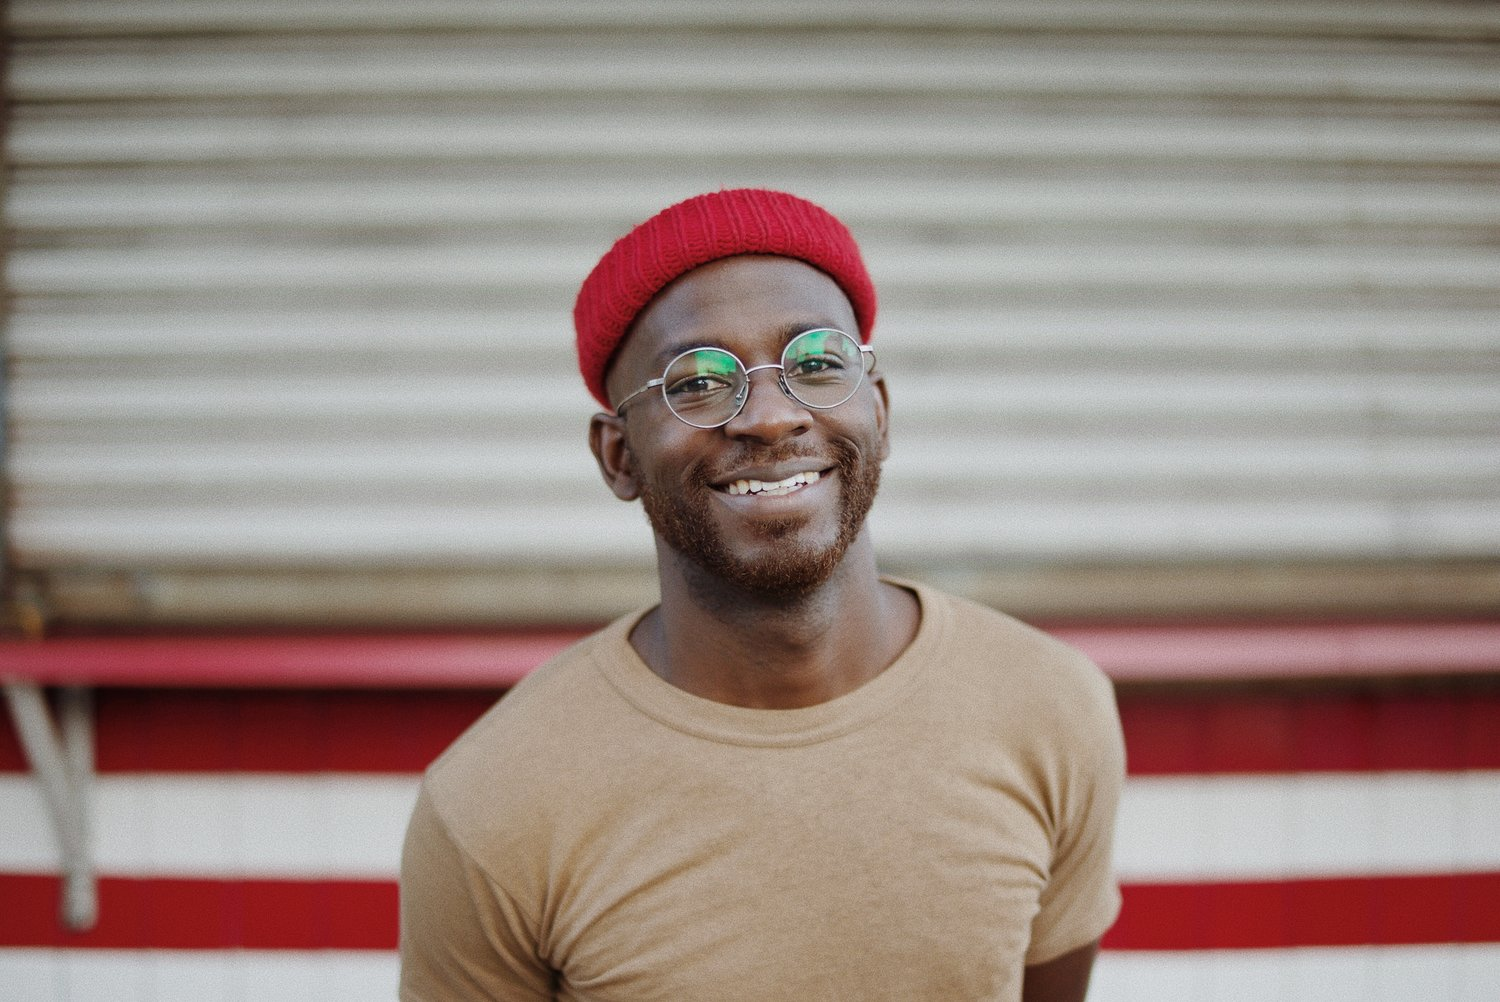 Maceo Paisley - Multi-disciplinary artist, designer, and cultural producer who explores themes in society and identity through movement, language, and imagery.After serving the in the U.S. army and climbing the ladders of corporate America, Maceo